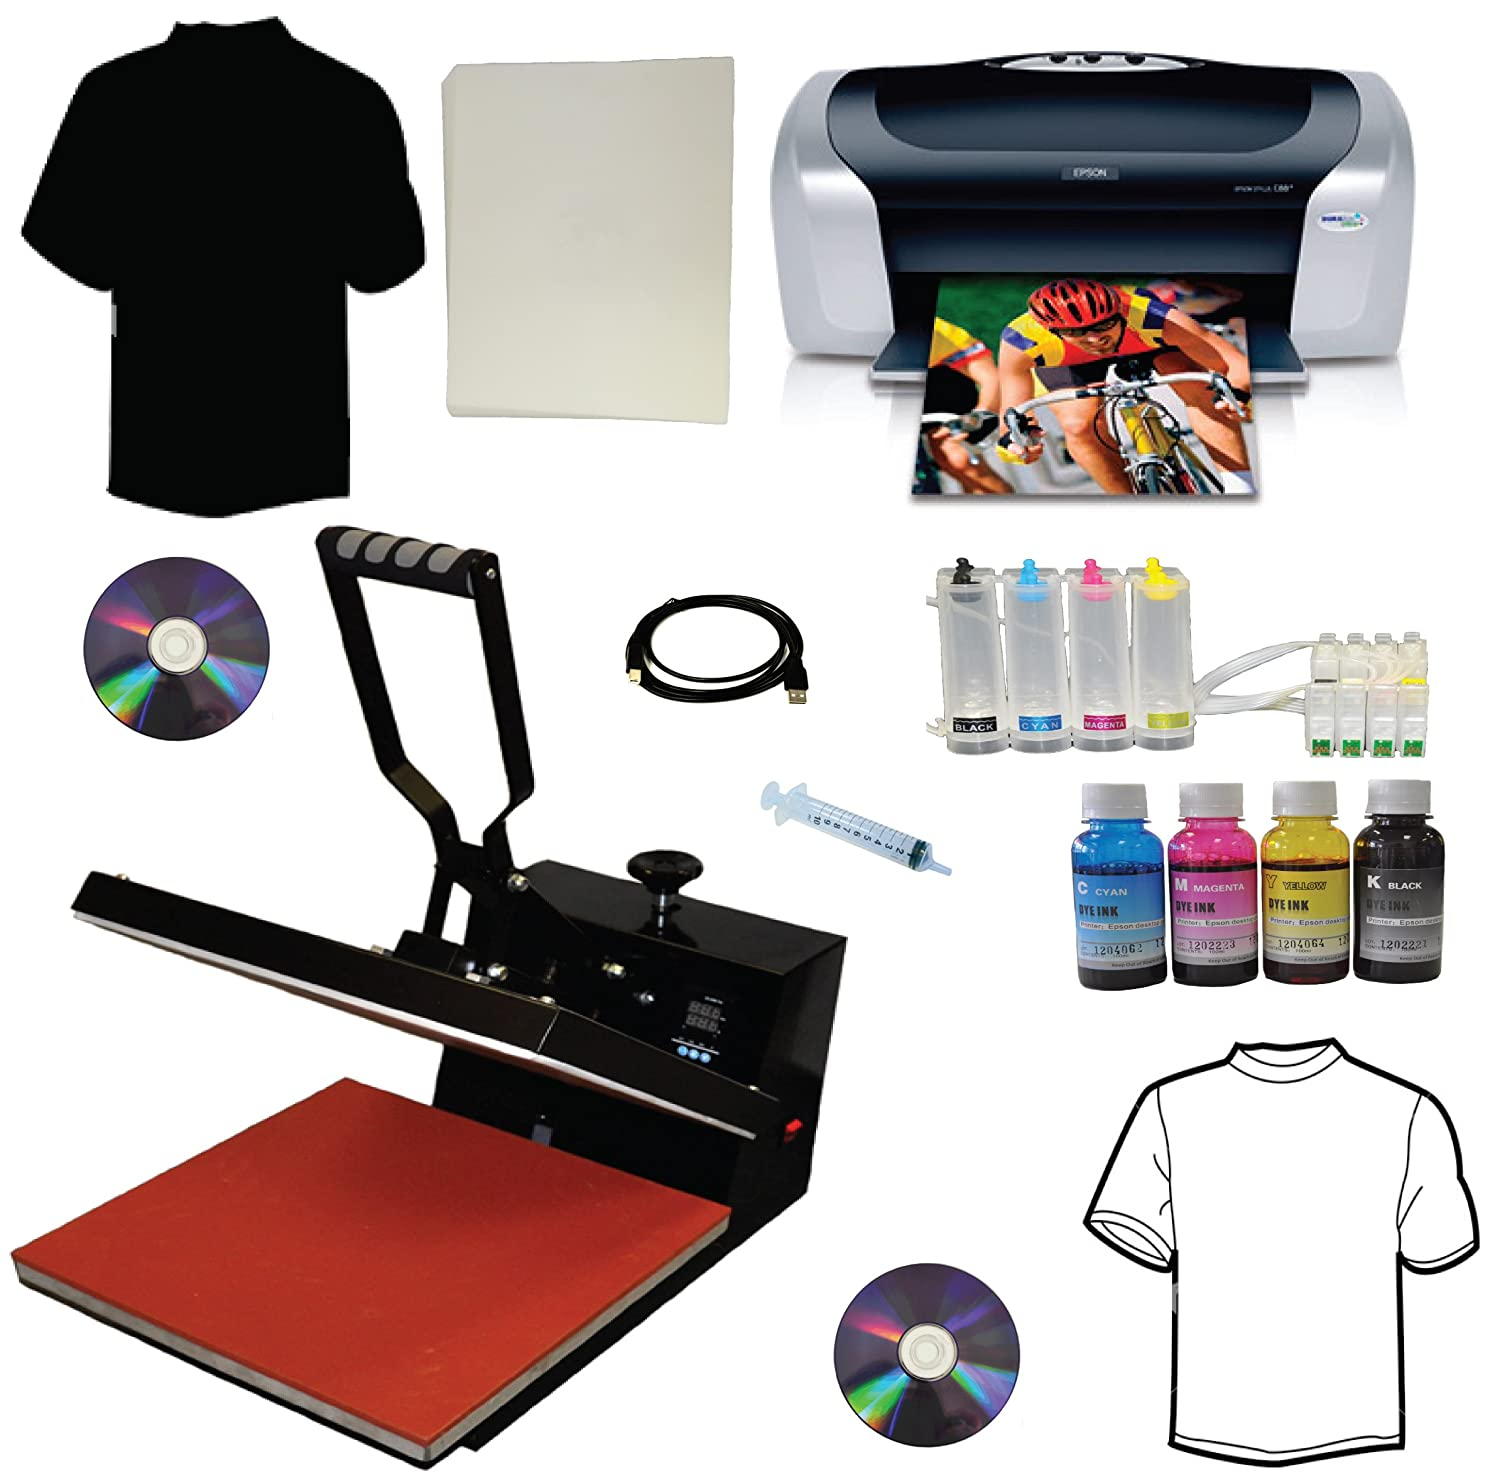 4f3bf44d3 Amazon.com: 15x15 Heat Transfer Press Epson C88+ Printer CISS Ink Refills  Bundle